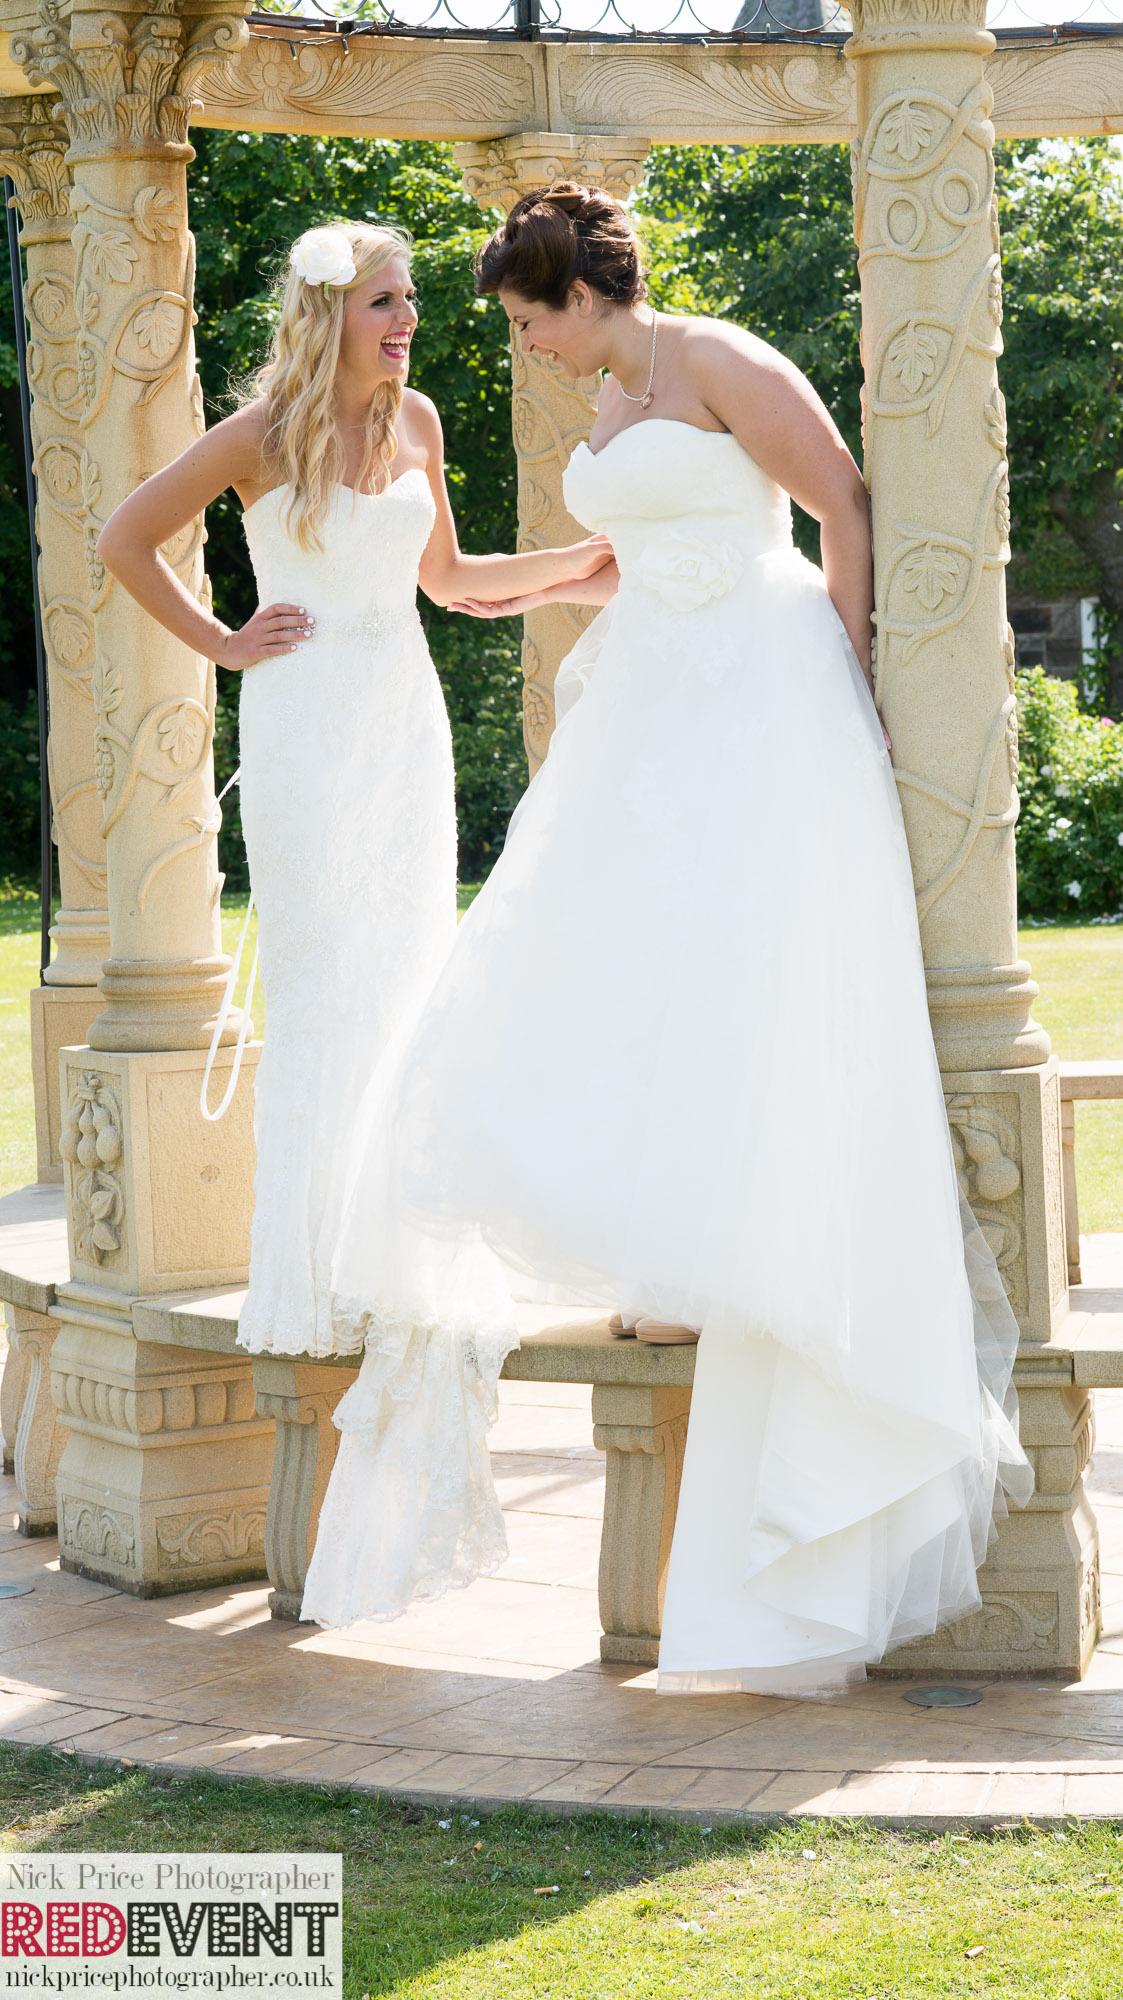 FB TW Leasowe Castle Wedding Fayre, Wirral. Sunday 22nd June Anna & Chloe Photoshoot  RED EVENT-360